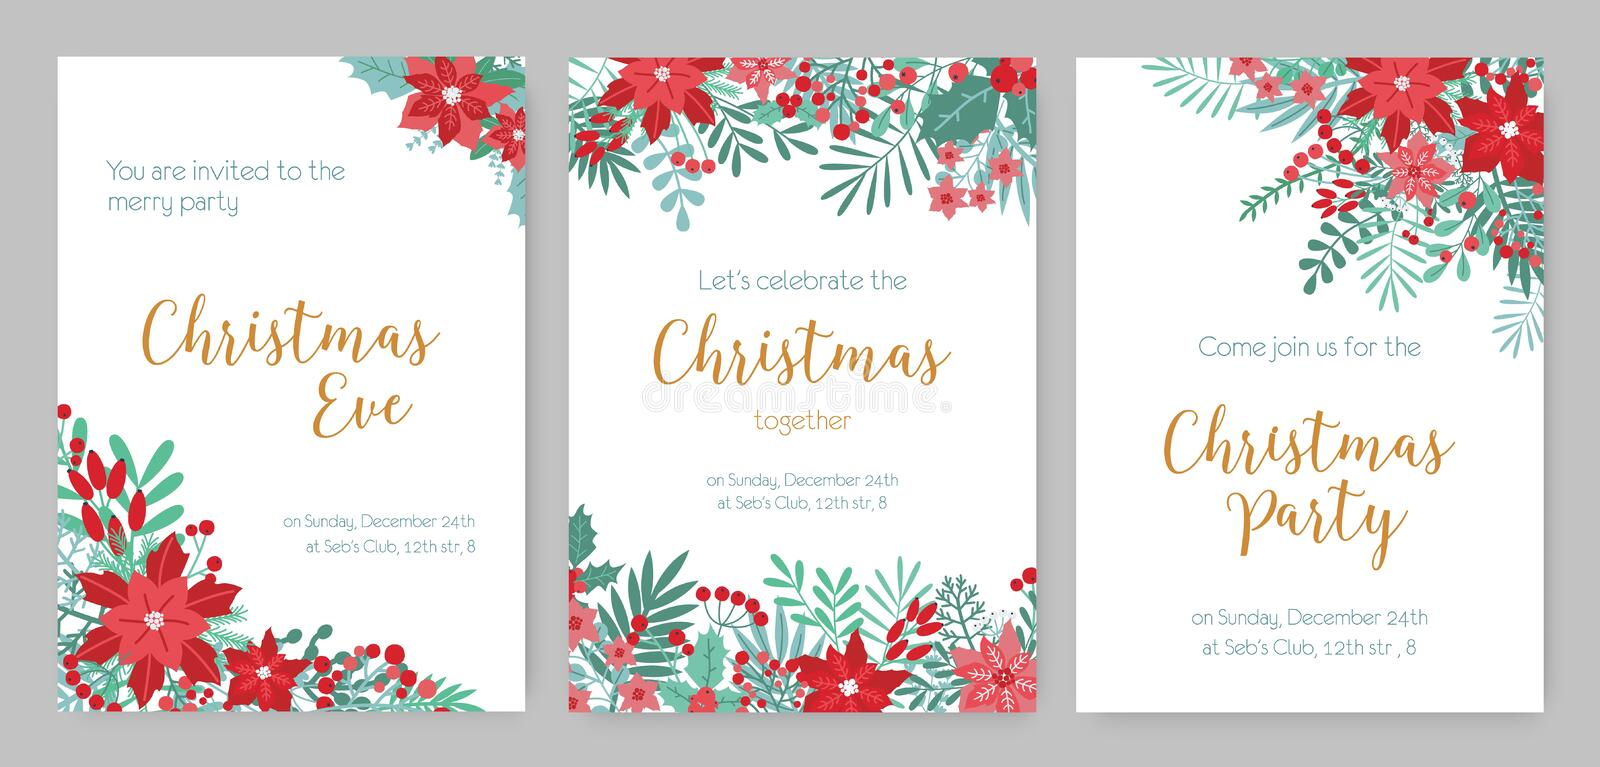 Collection of Christmas Party invitations, holiday event announcement or festive flyer templates decorated with red and royalty free illustration